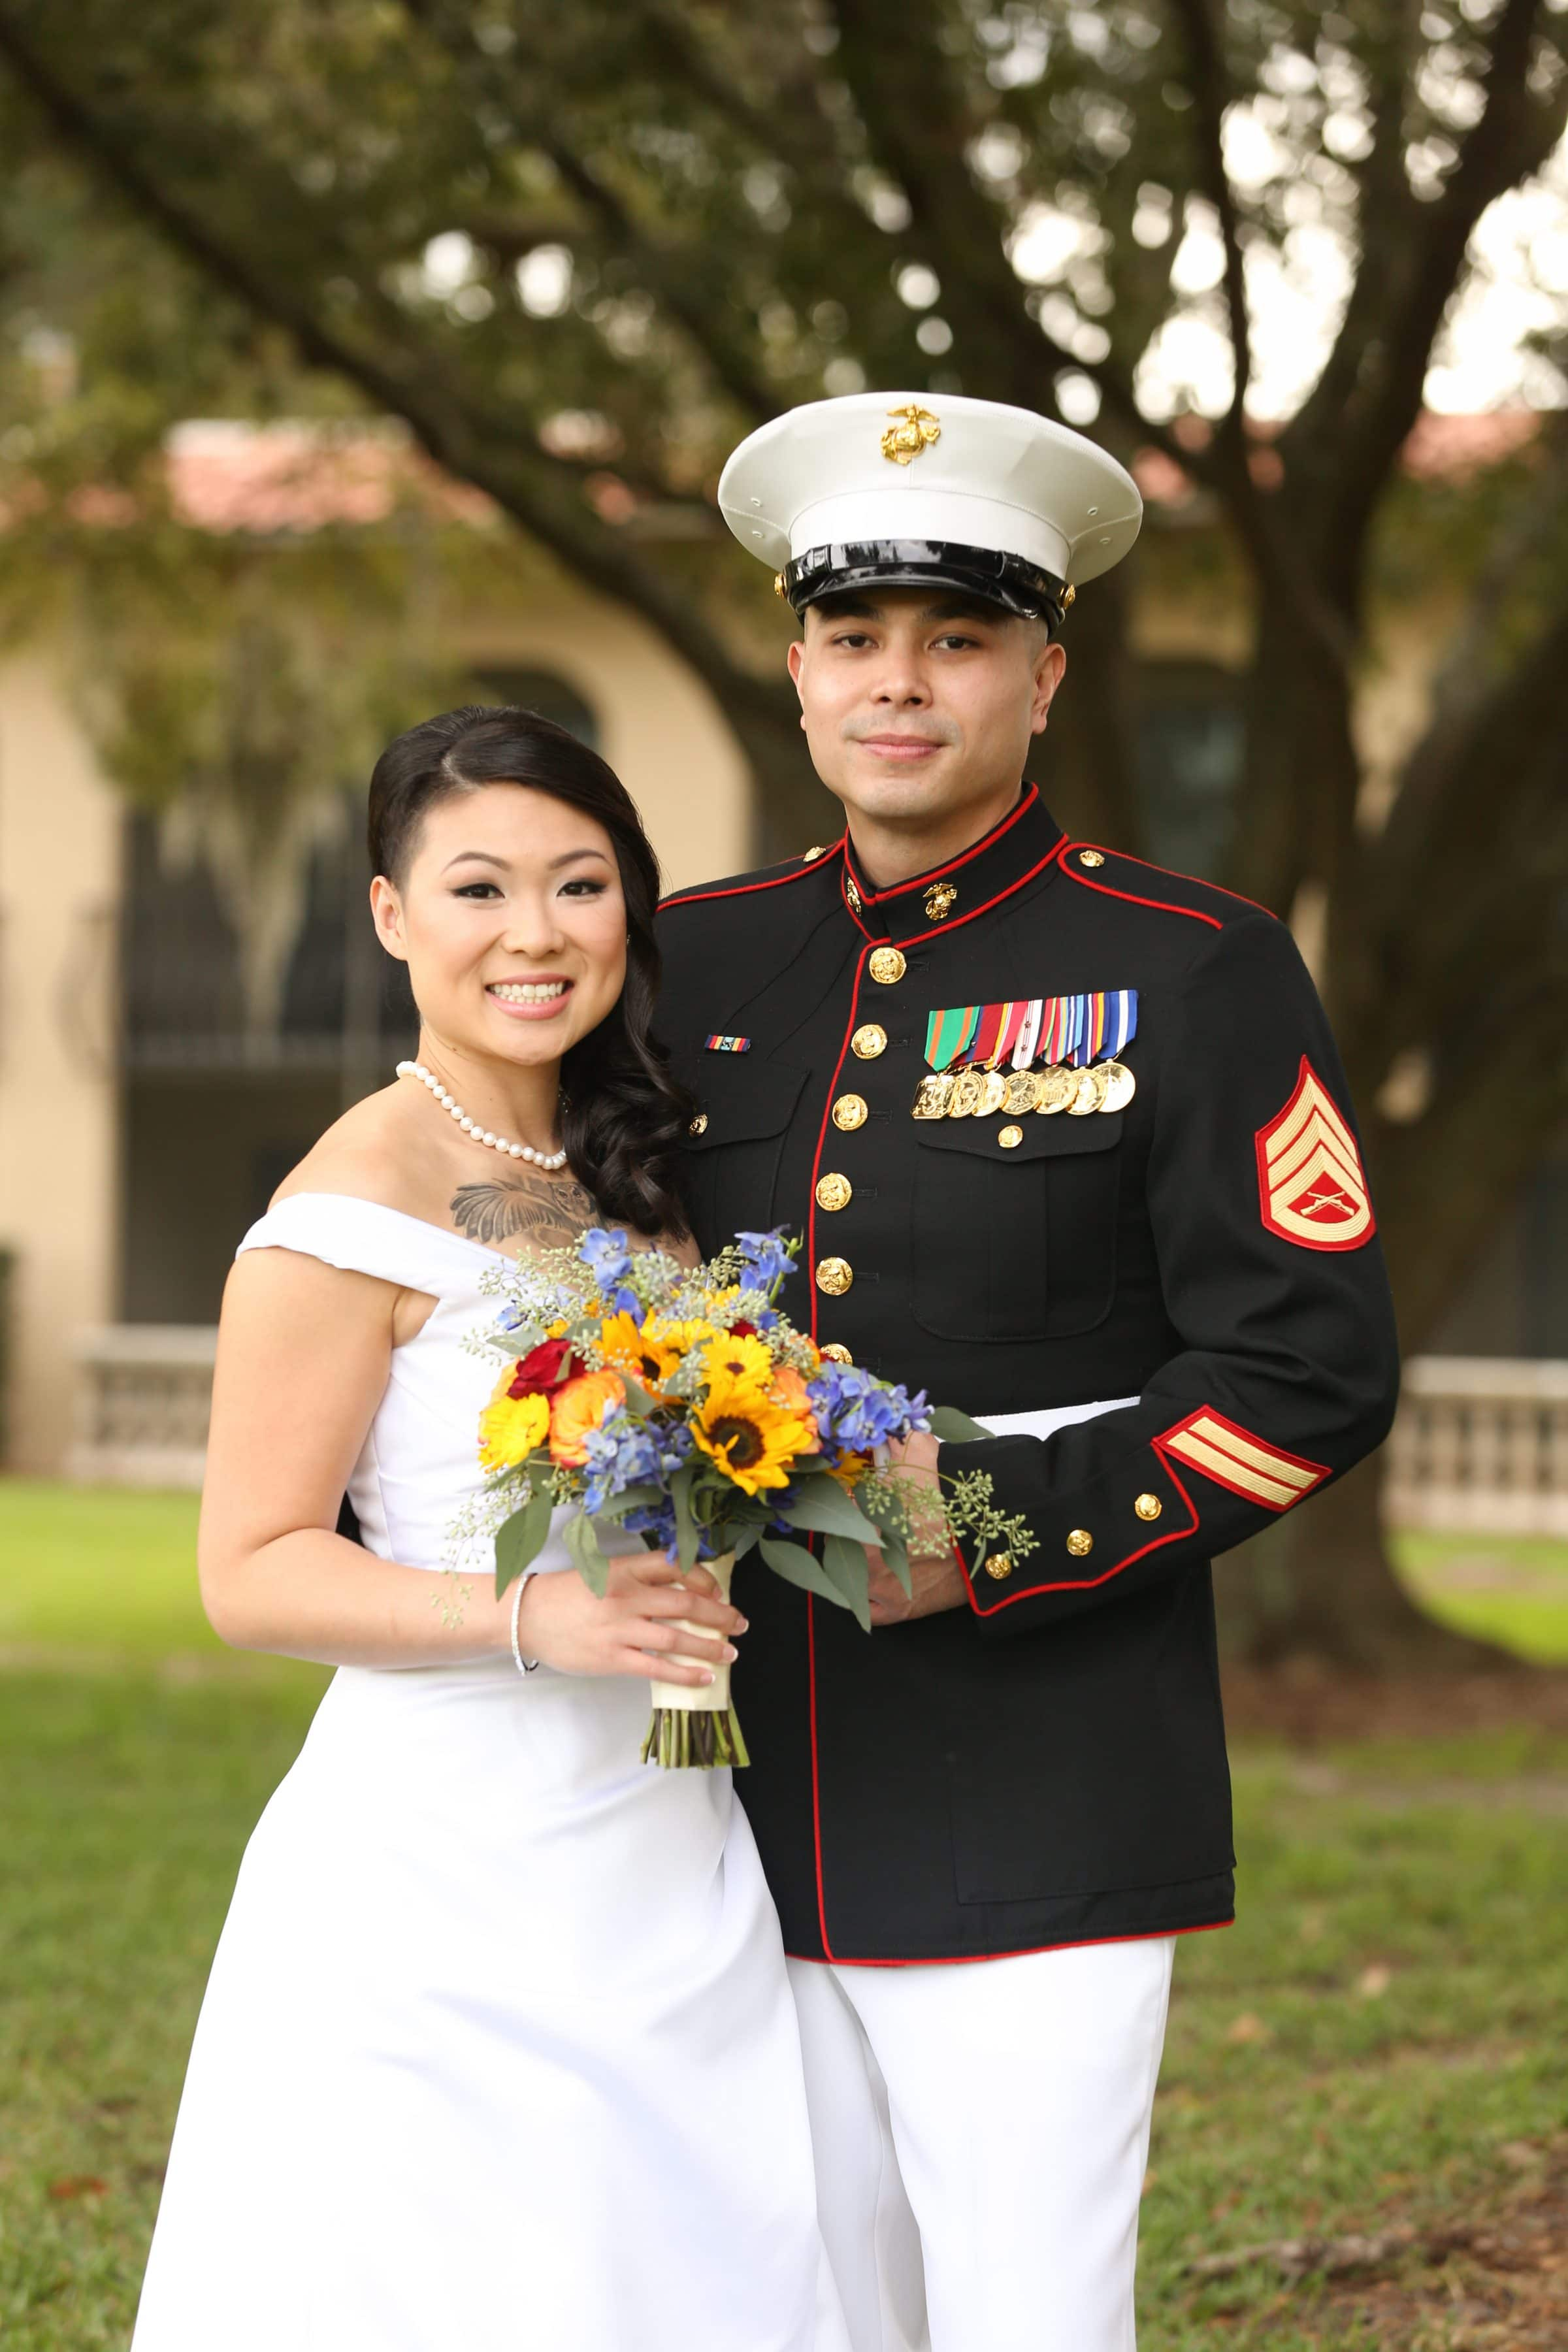 Smiling bride and military groom